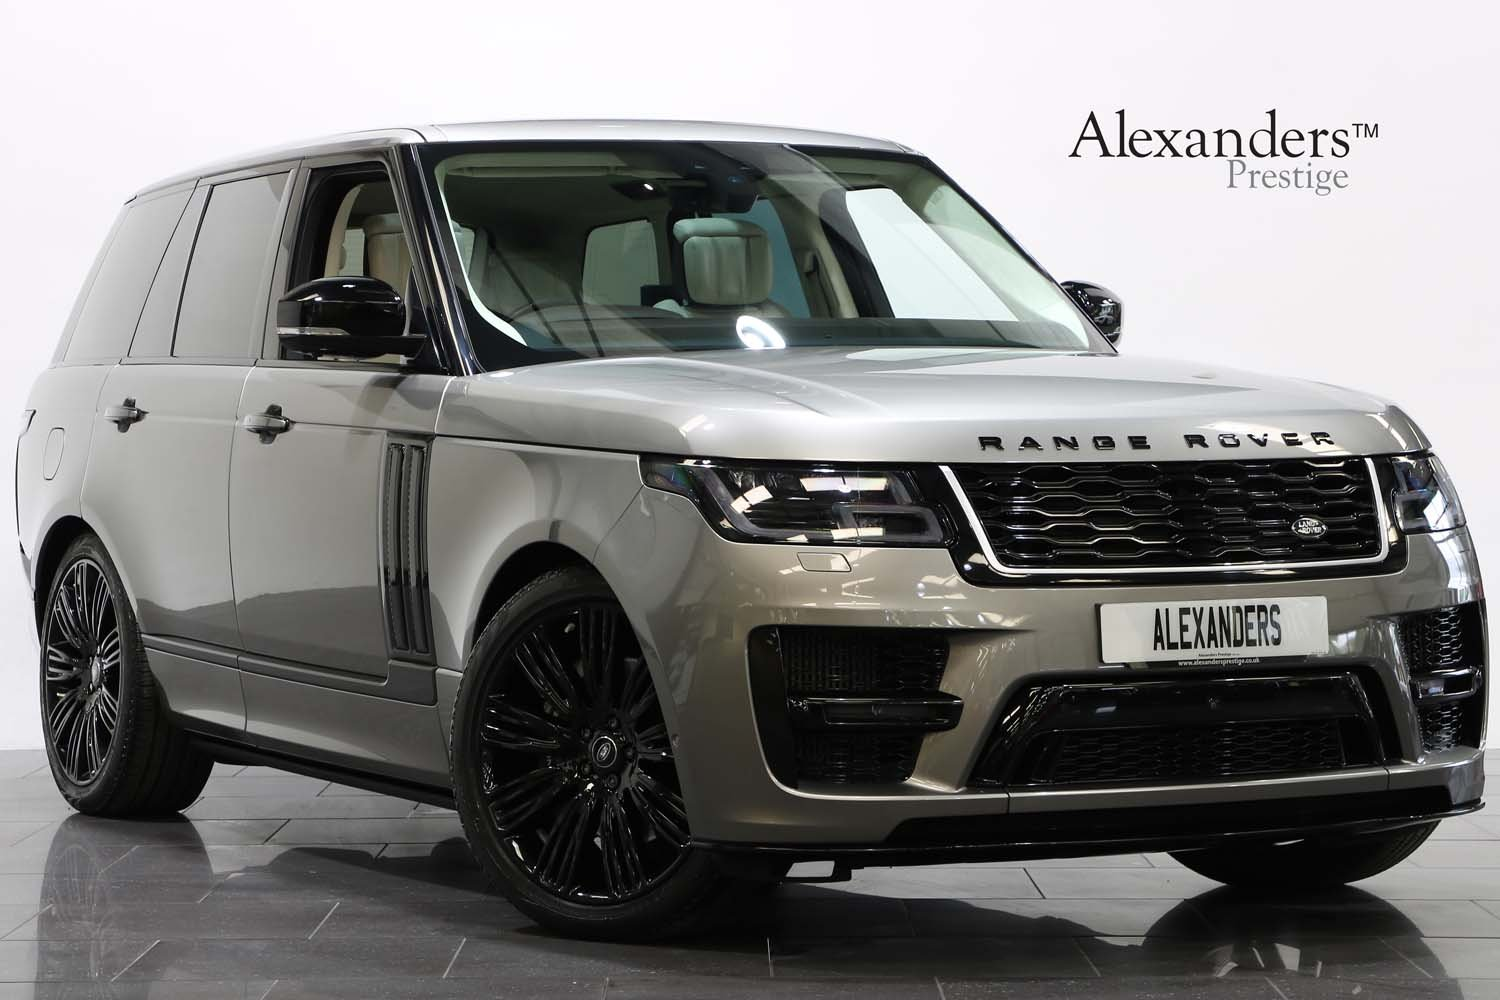 2018 68 RANGE ROVER 4.4 SDV8 AUTOBIOGRAPHY AUTO  For Sale (picture 1 of 6)